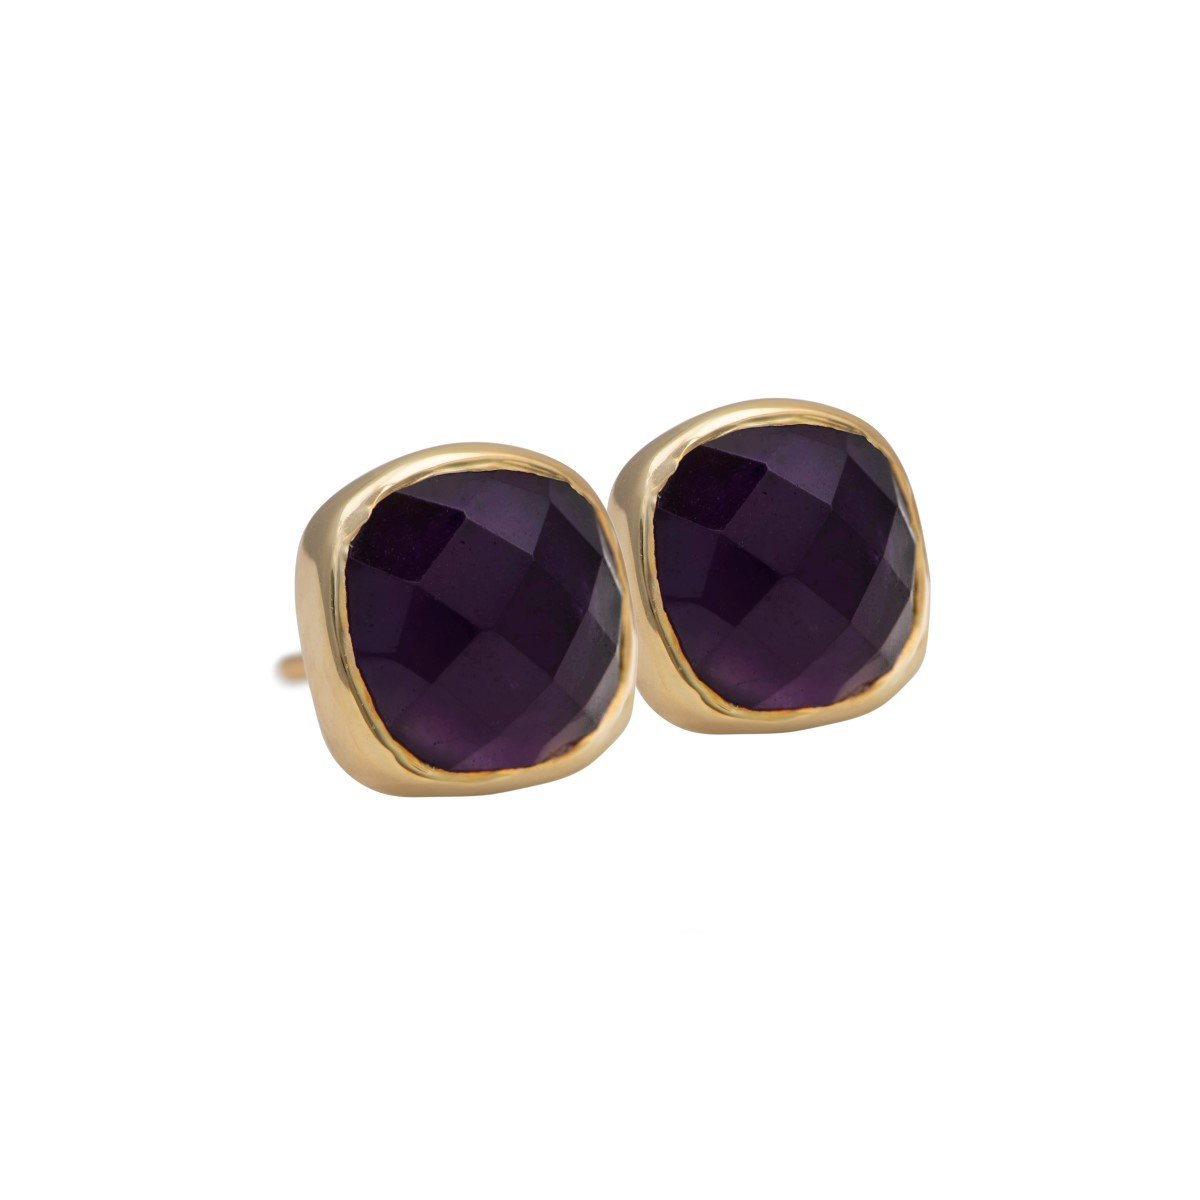 Faceted Square Amethyst Gemstone Stud Earrings in Gold Plated Sterling Silver